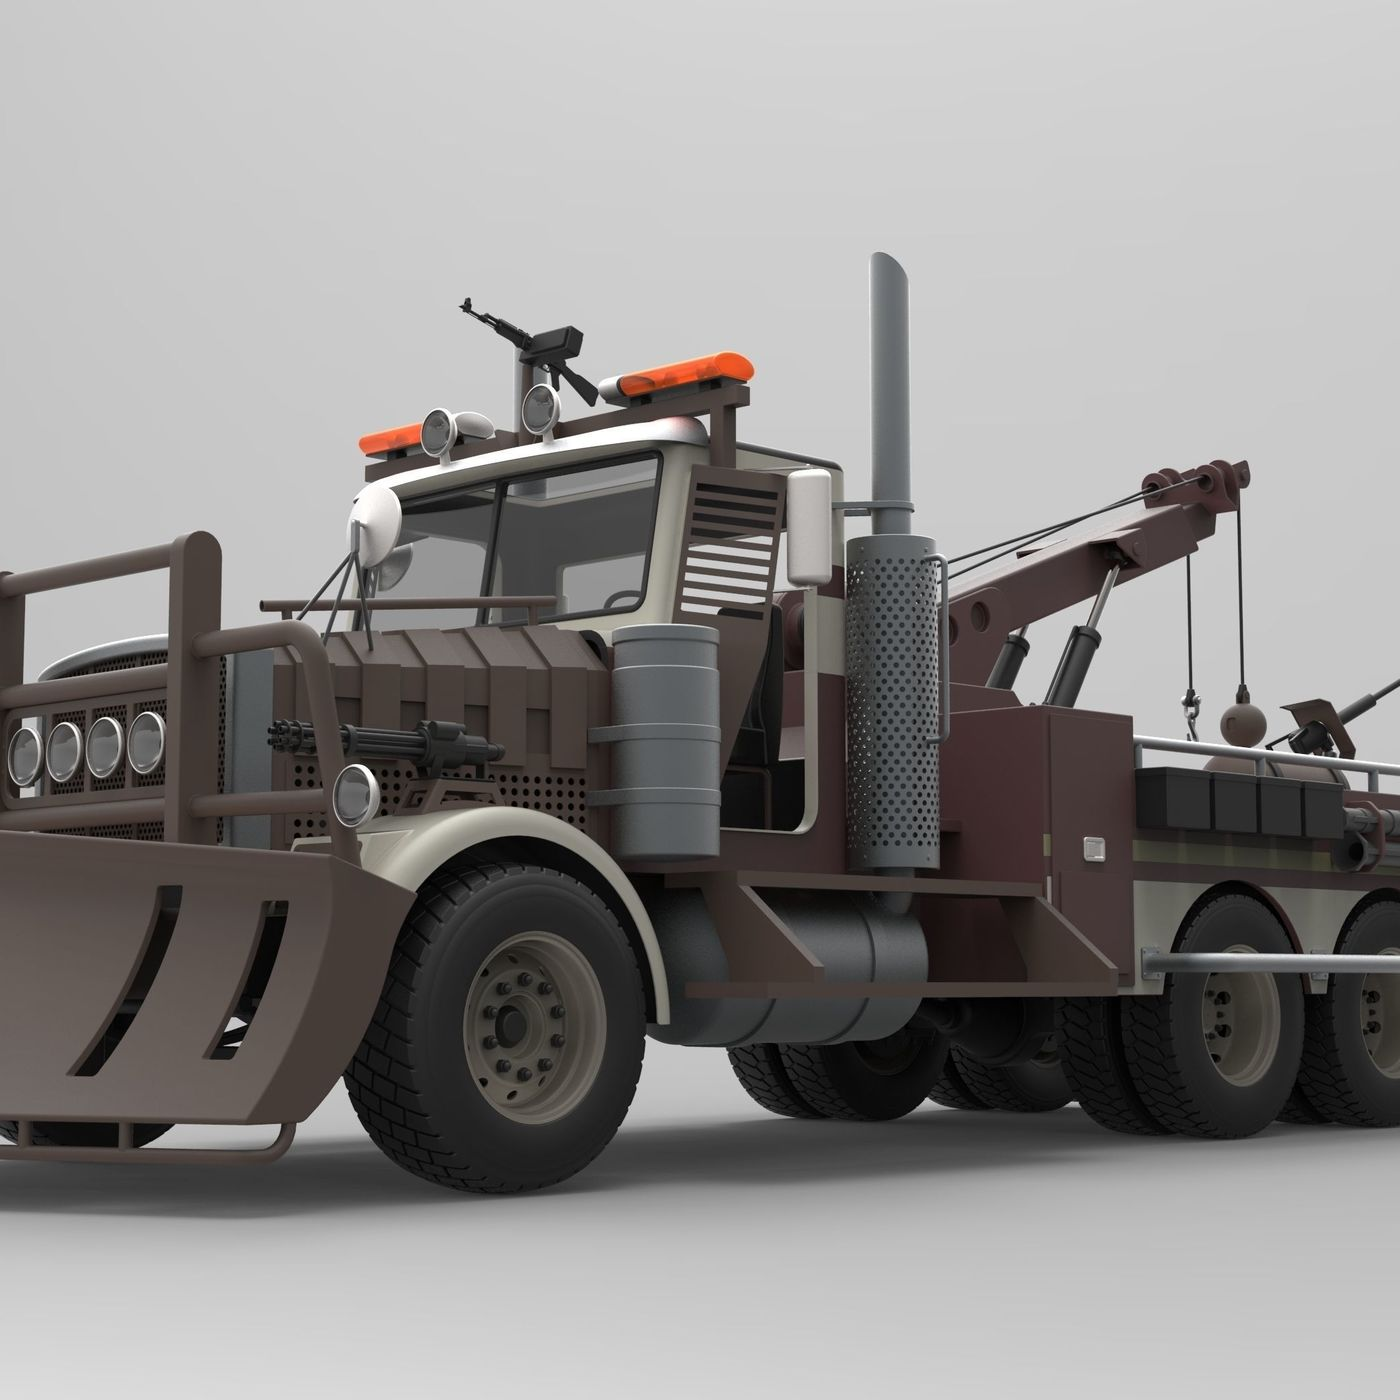 Towtruck from Terminator salvation